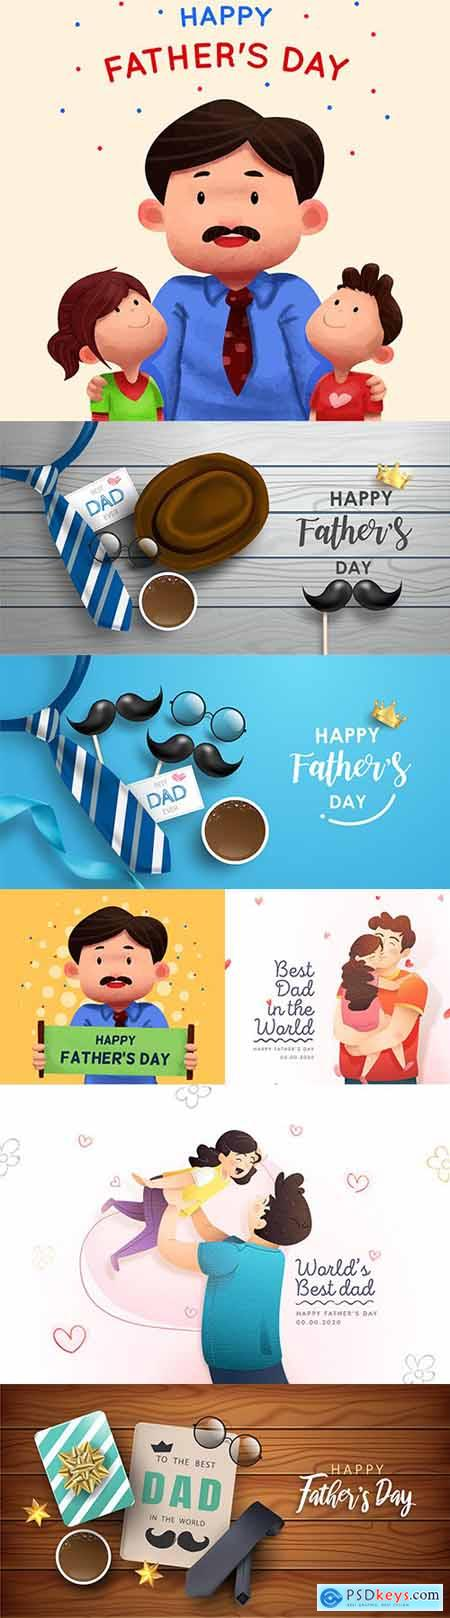 Happy Father s Day design greeting card and banner 5